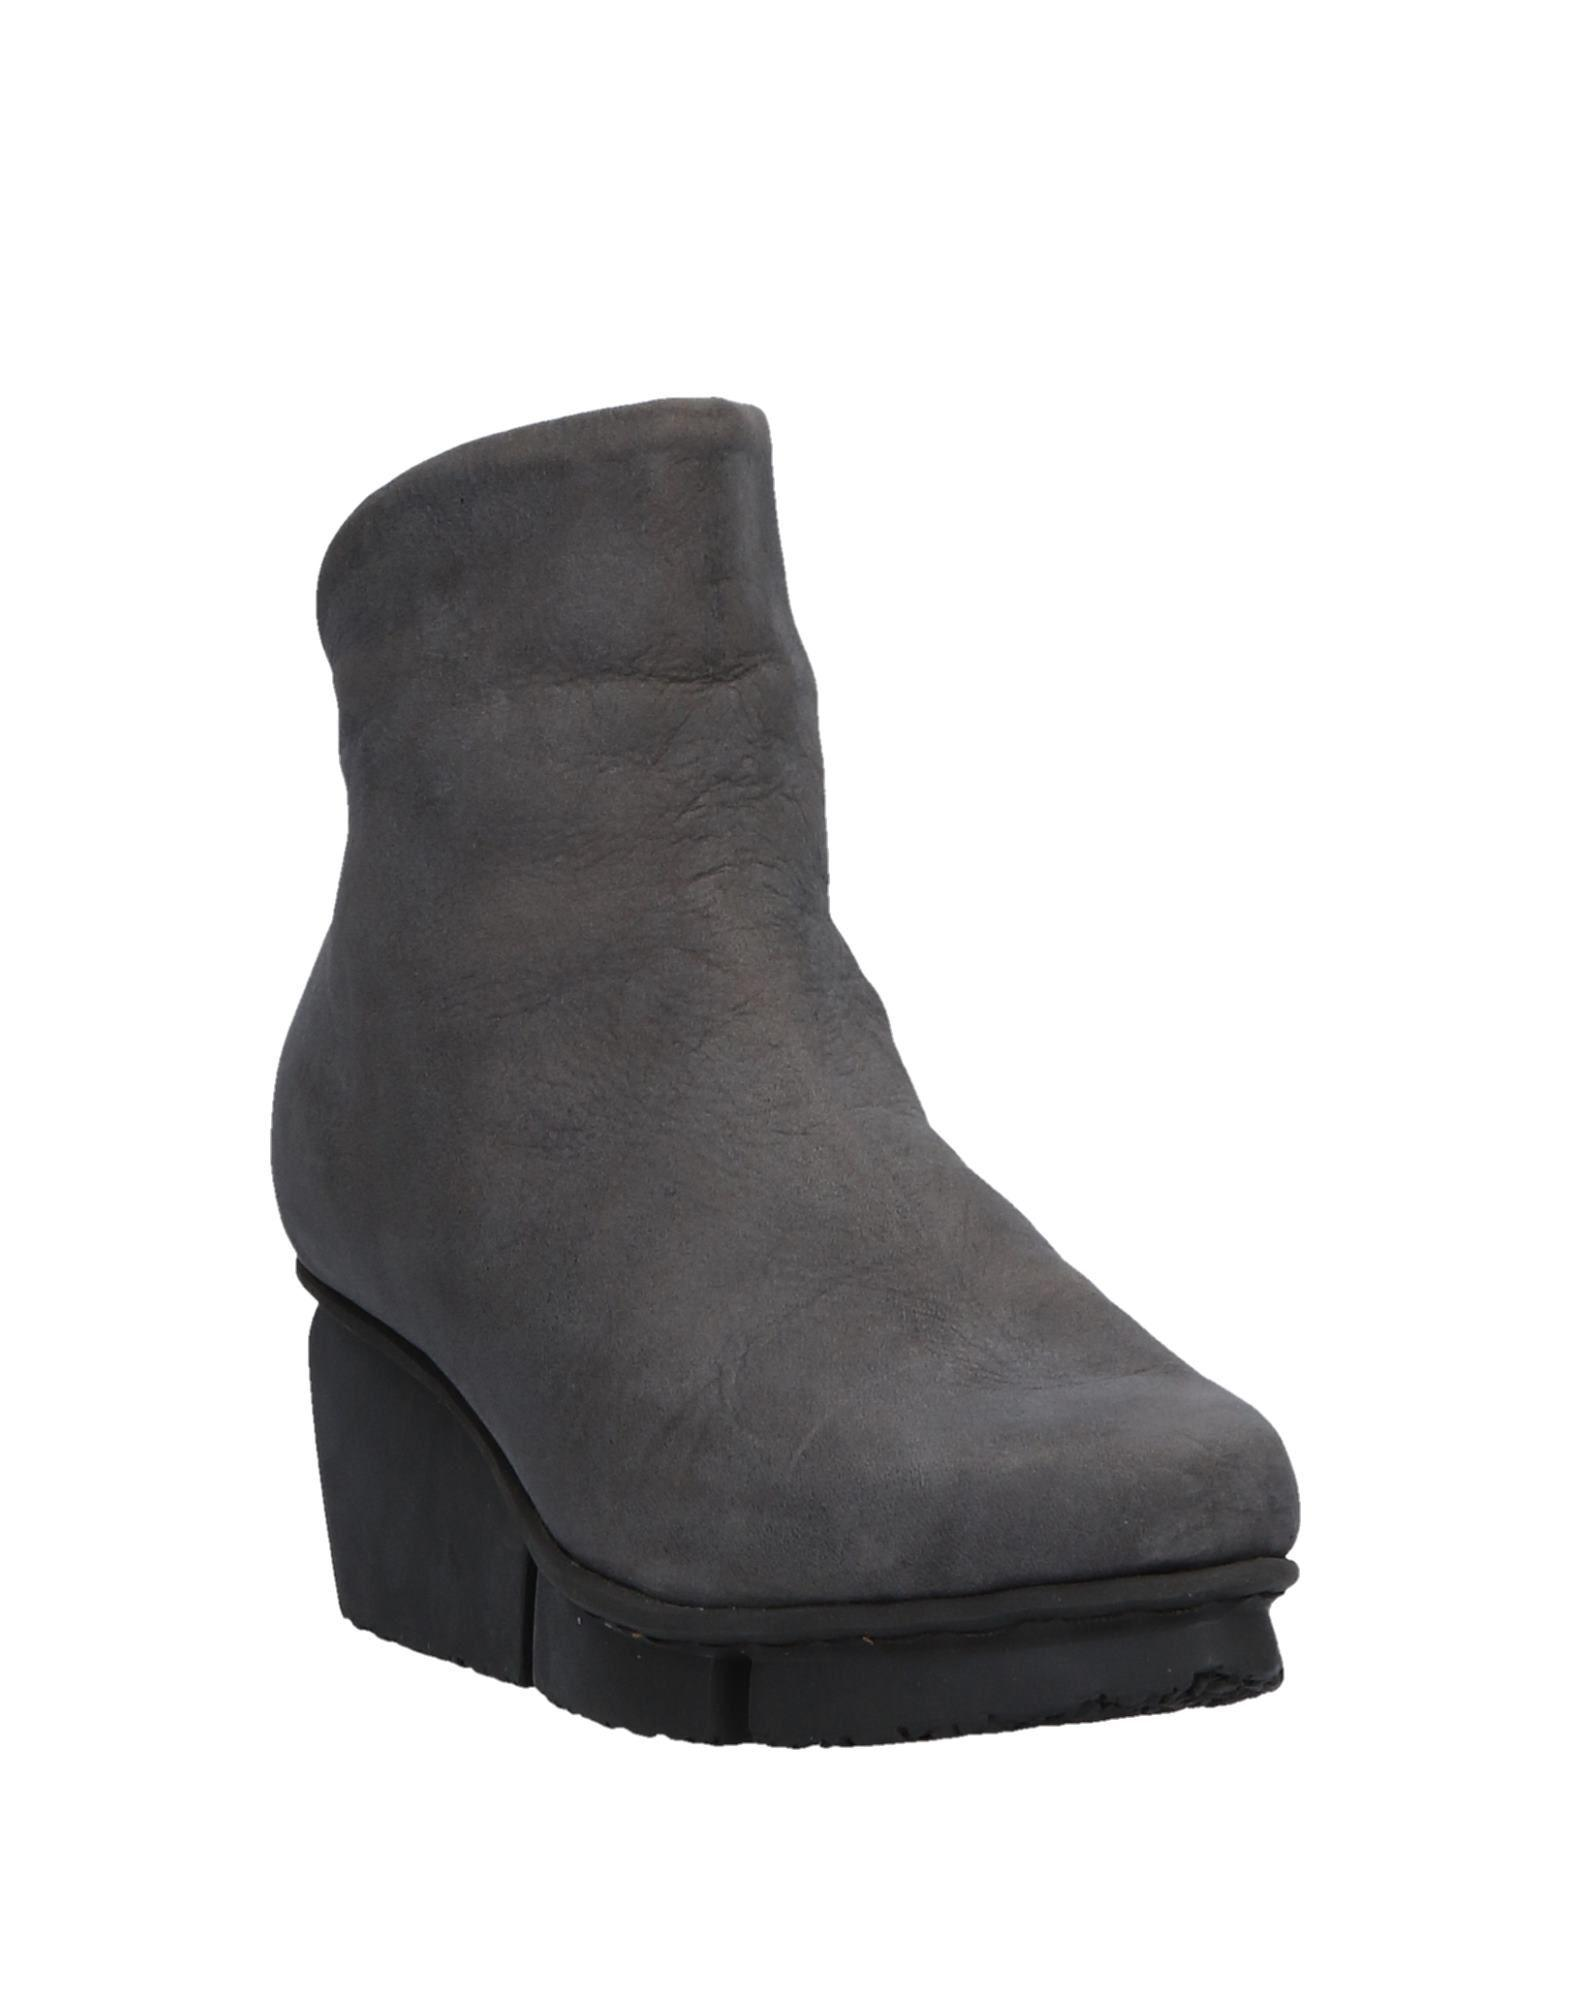 Trippen Leather Ankle Boots in Grey (Grey)